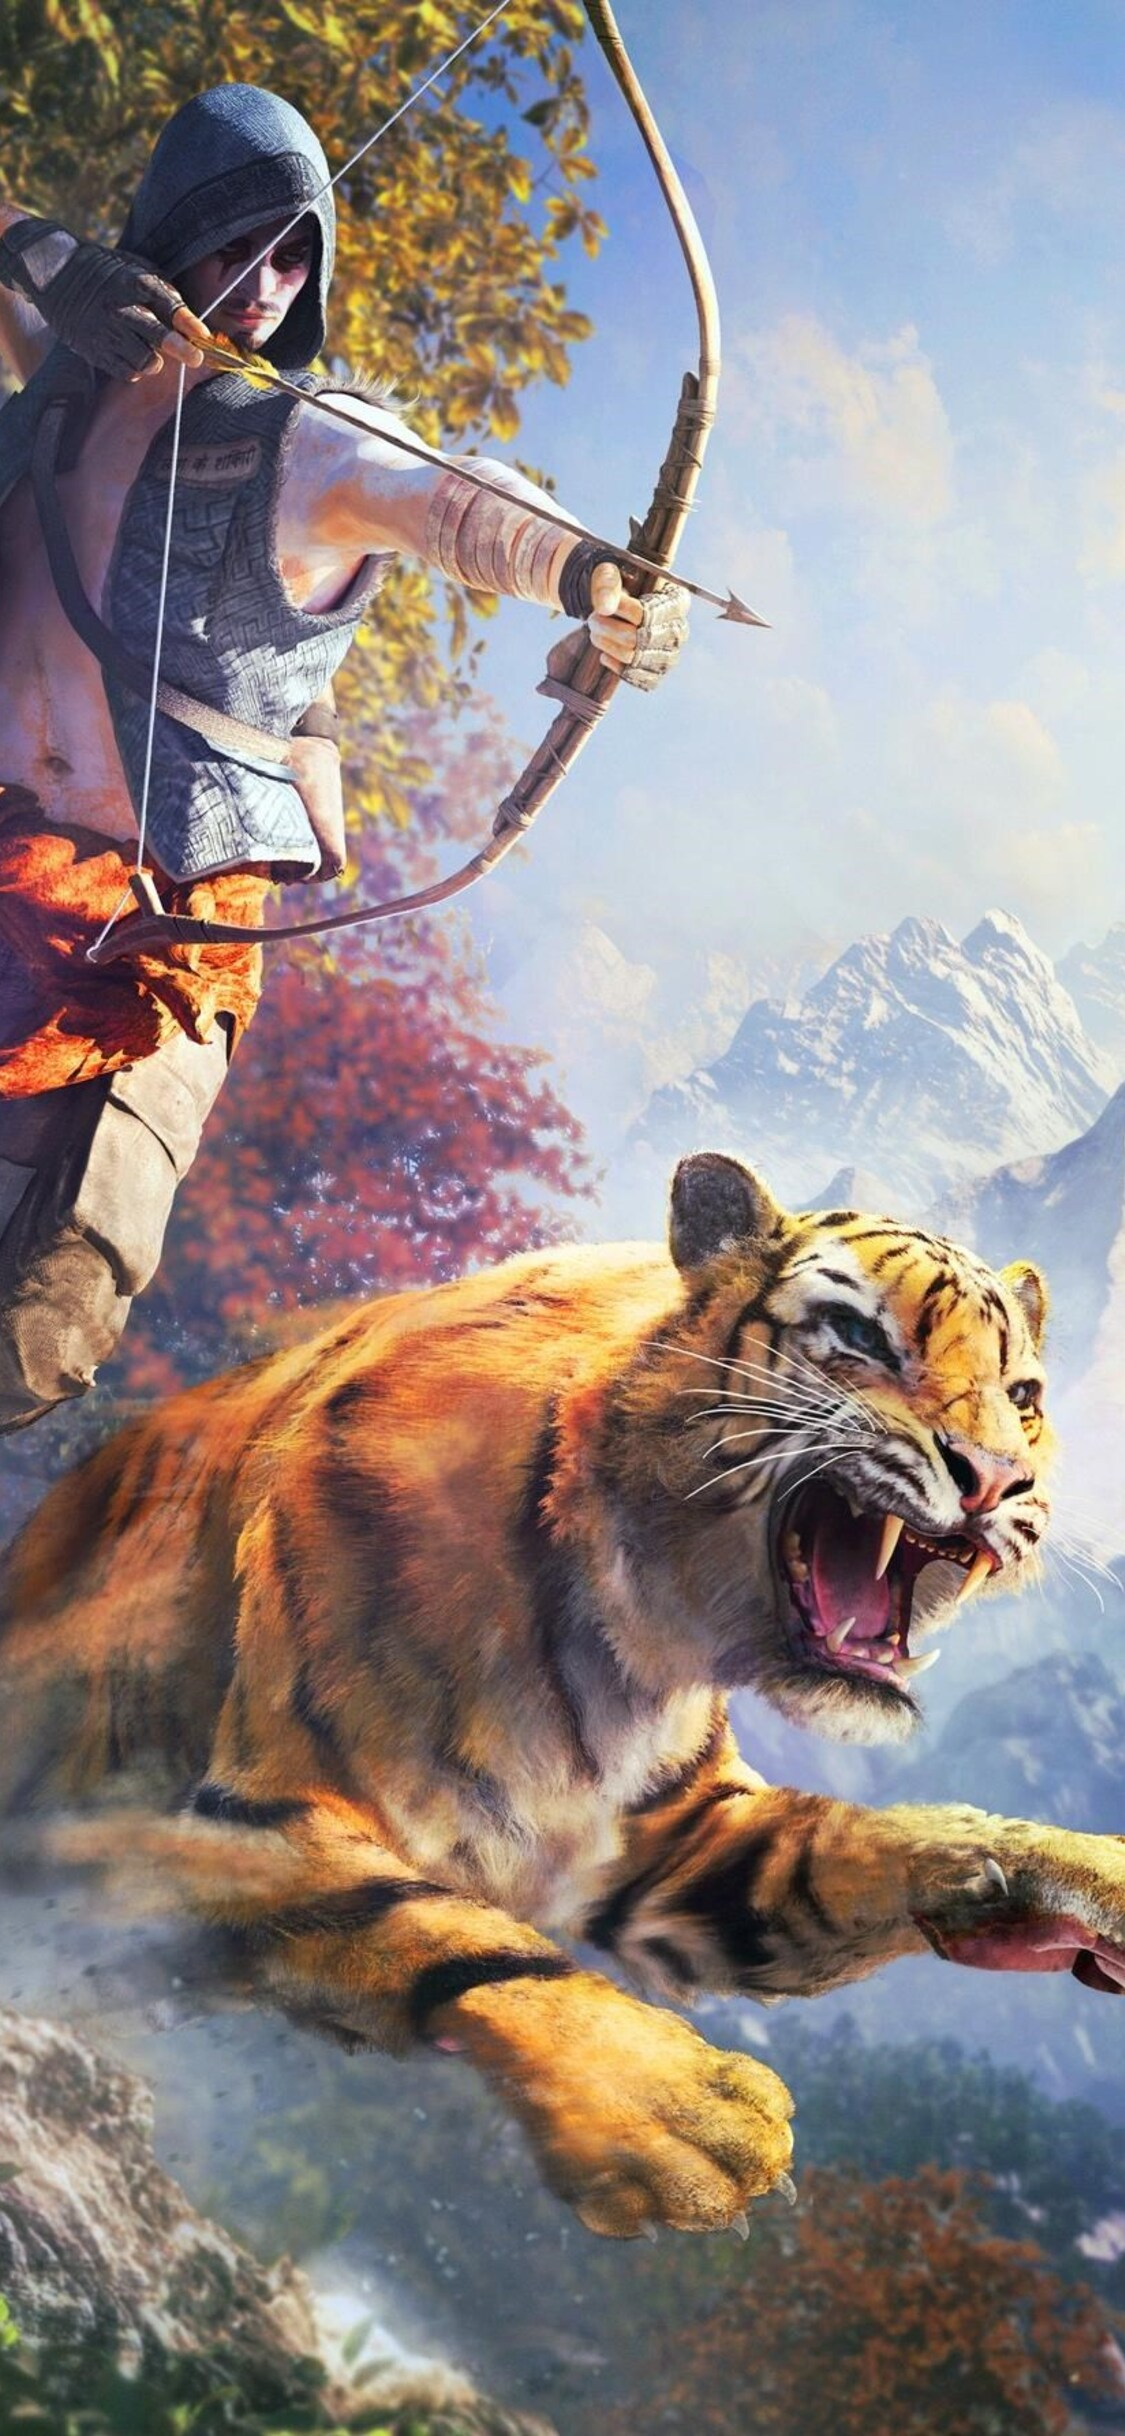 1125x2436 Far Cry 4 Game Iphone Xs Iphone 10 Iphone X Hd 4k